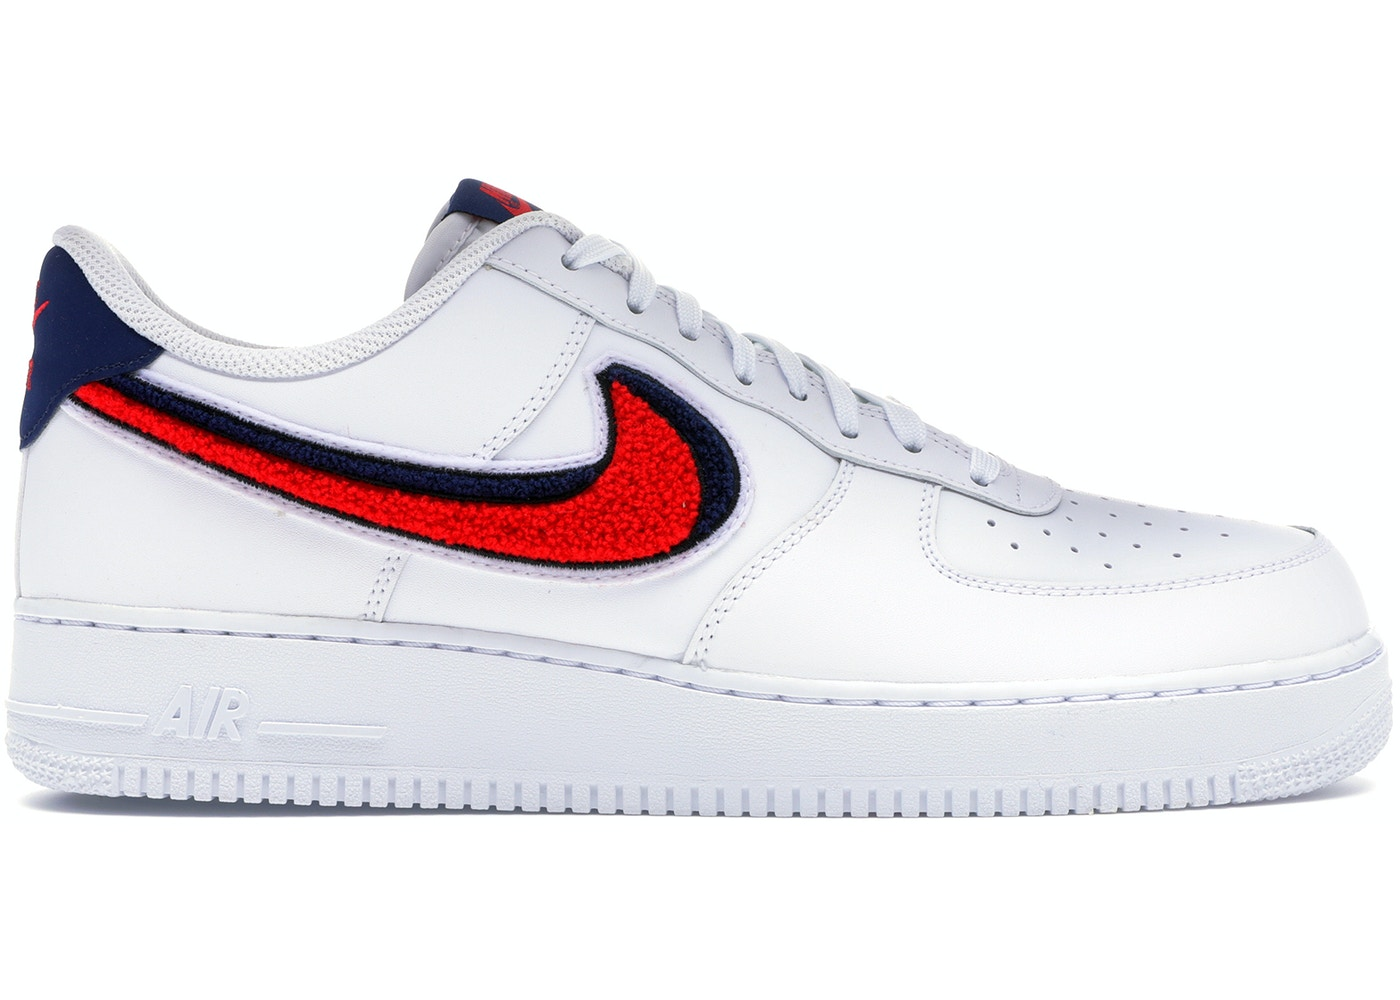 6b3bd8caf07b Air Force 1 Low 3D Chenille Swoosh White Red Blue - 823511-106